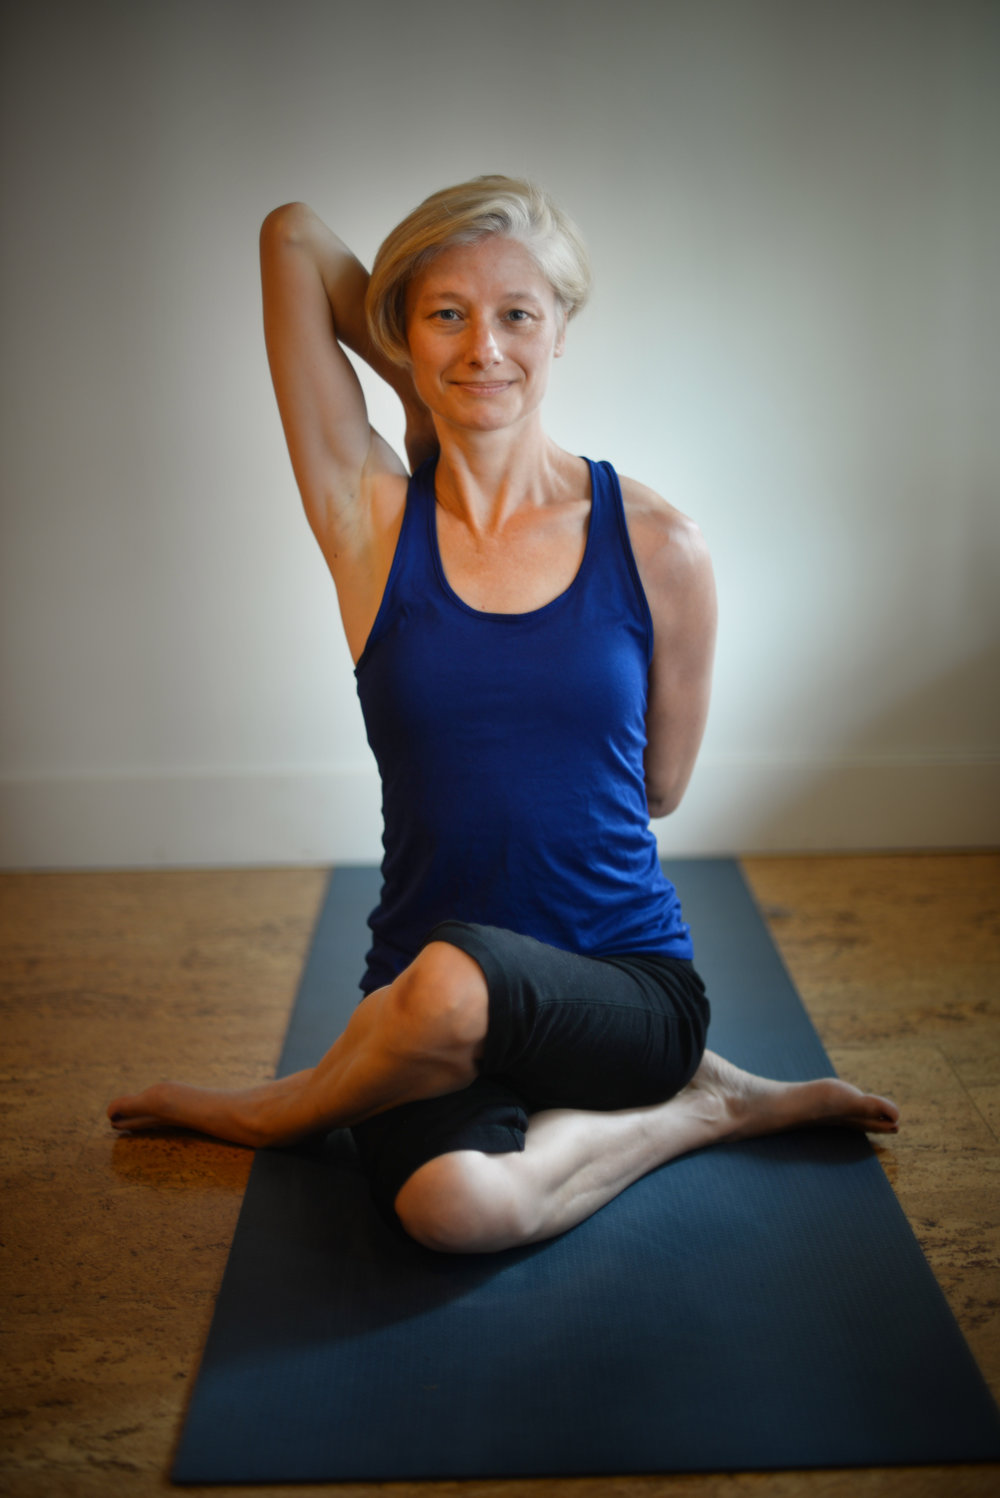 Nadine - I have been practicing yoga for over 7 years and am RYT 200 certified. I even had office yoga in my last office and experienced the benefits of it first hand. I fell in love with how yoga changed my life, so I set about to help others experience similar changes.I teach Hatha and Vinyasa style classes. Hatha classes move more slowly with the breath but the class warms you up as you move. The Vinyasa class has flowing, conscious movement to heat you up and focus your mind. I use yoga to ground you into yourself and work away soreness and tension from the day.